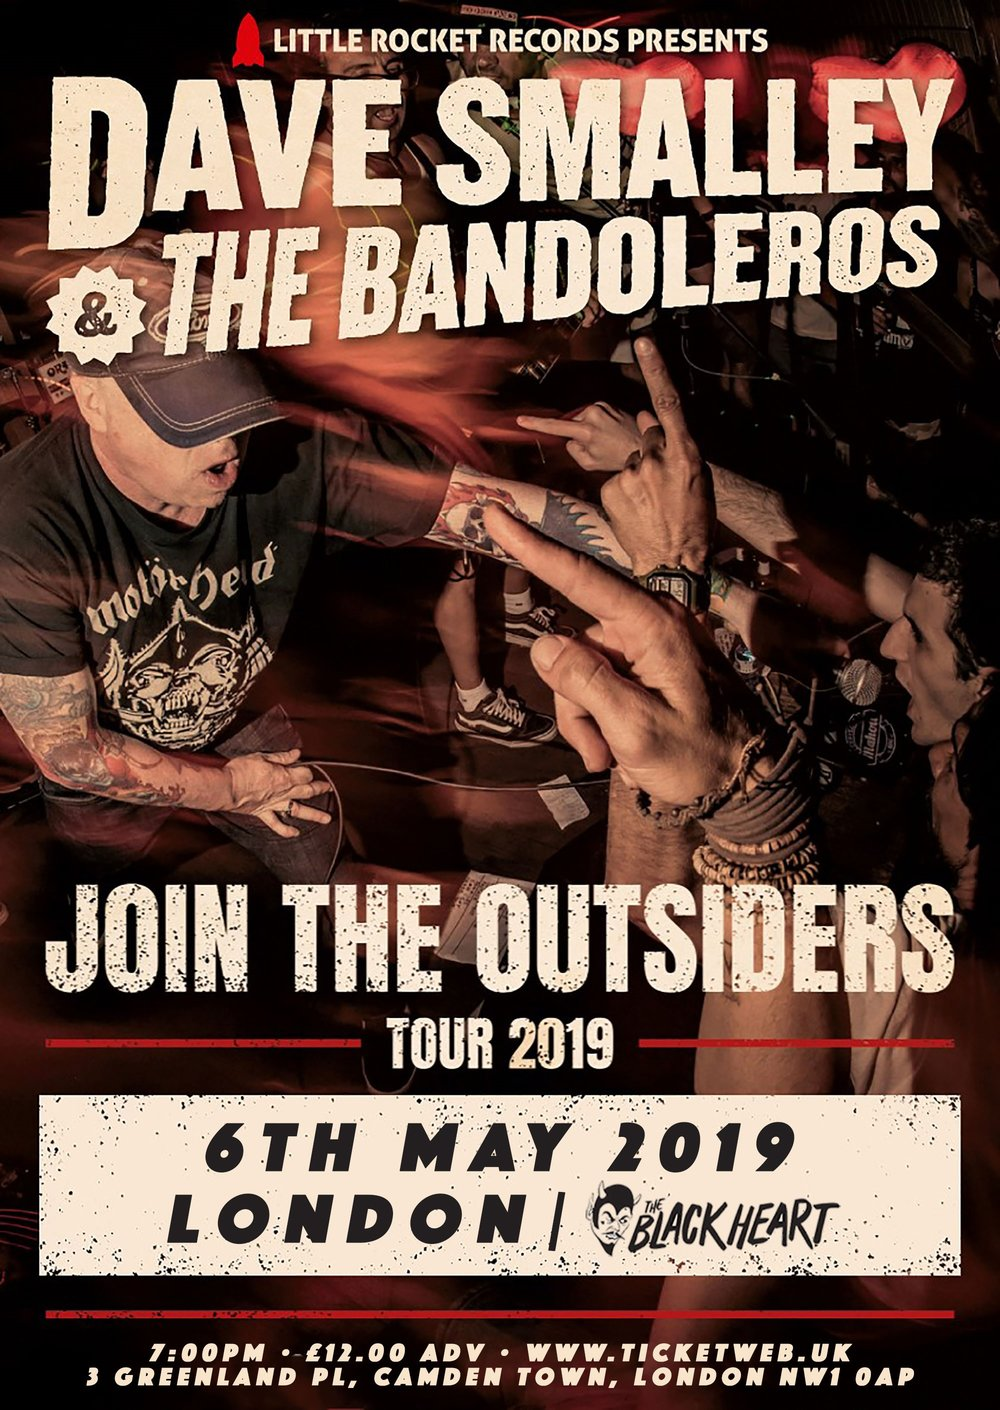 dave smalley & the bandoleros 2019 poster.jpg